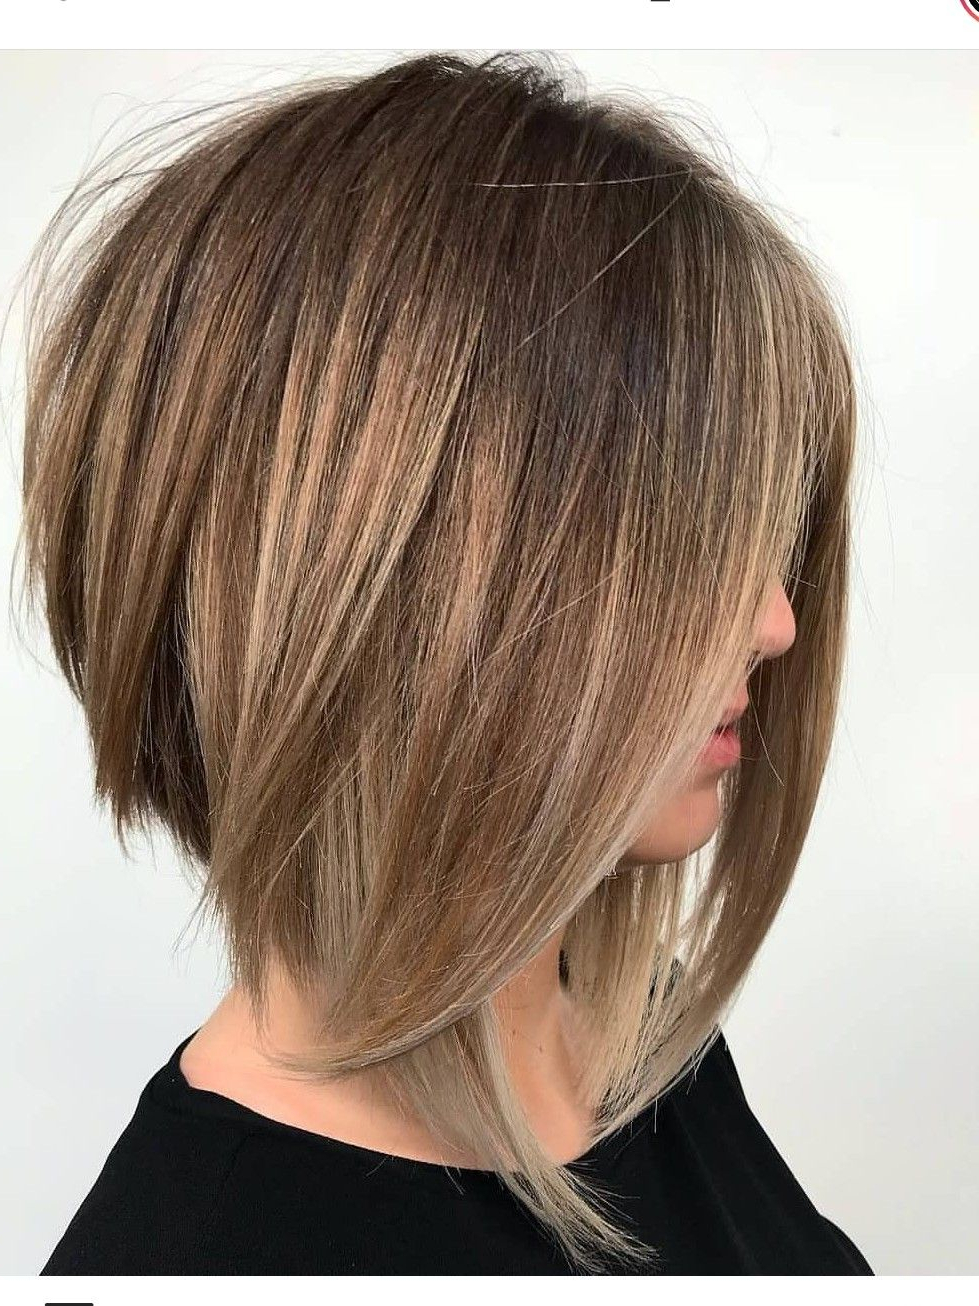 Famous Cute A Line Bob Hairstyles With Volume Towards The Ends Inside A Line Bob (View 4 of 20)